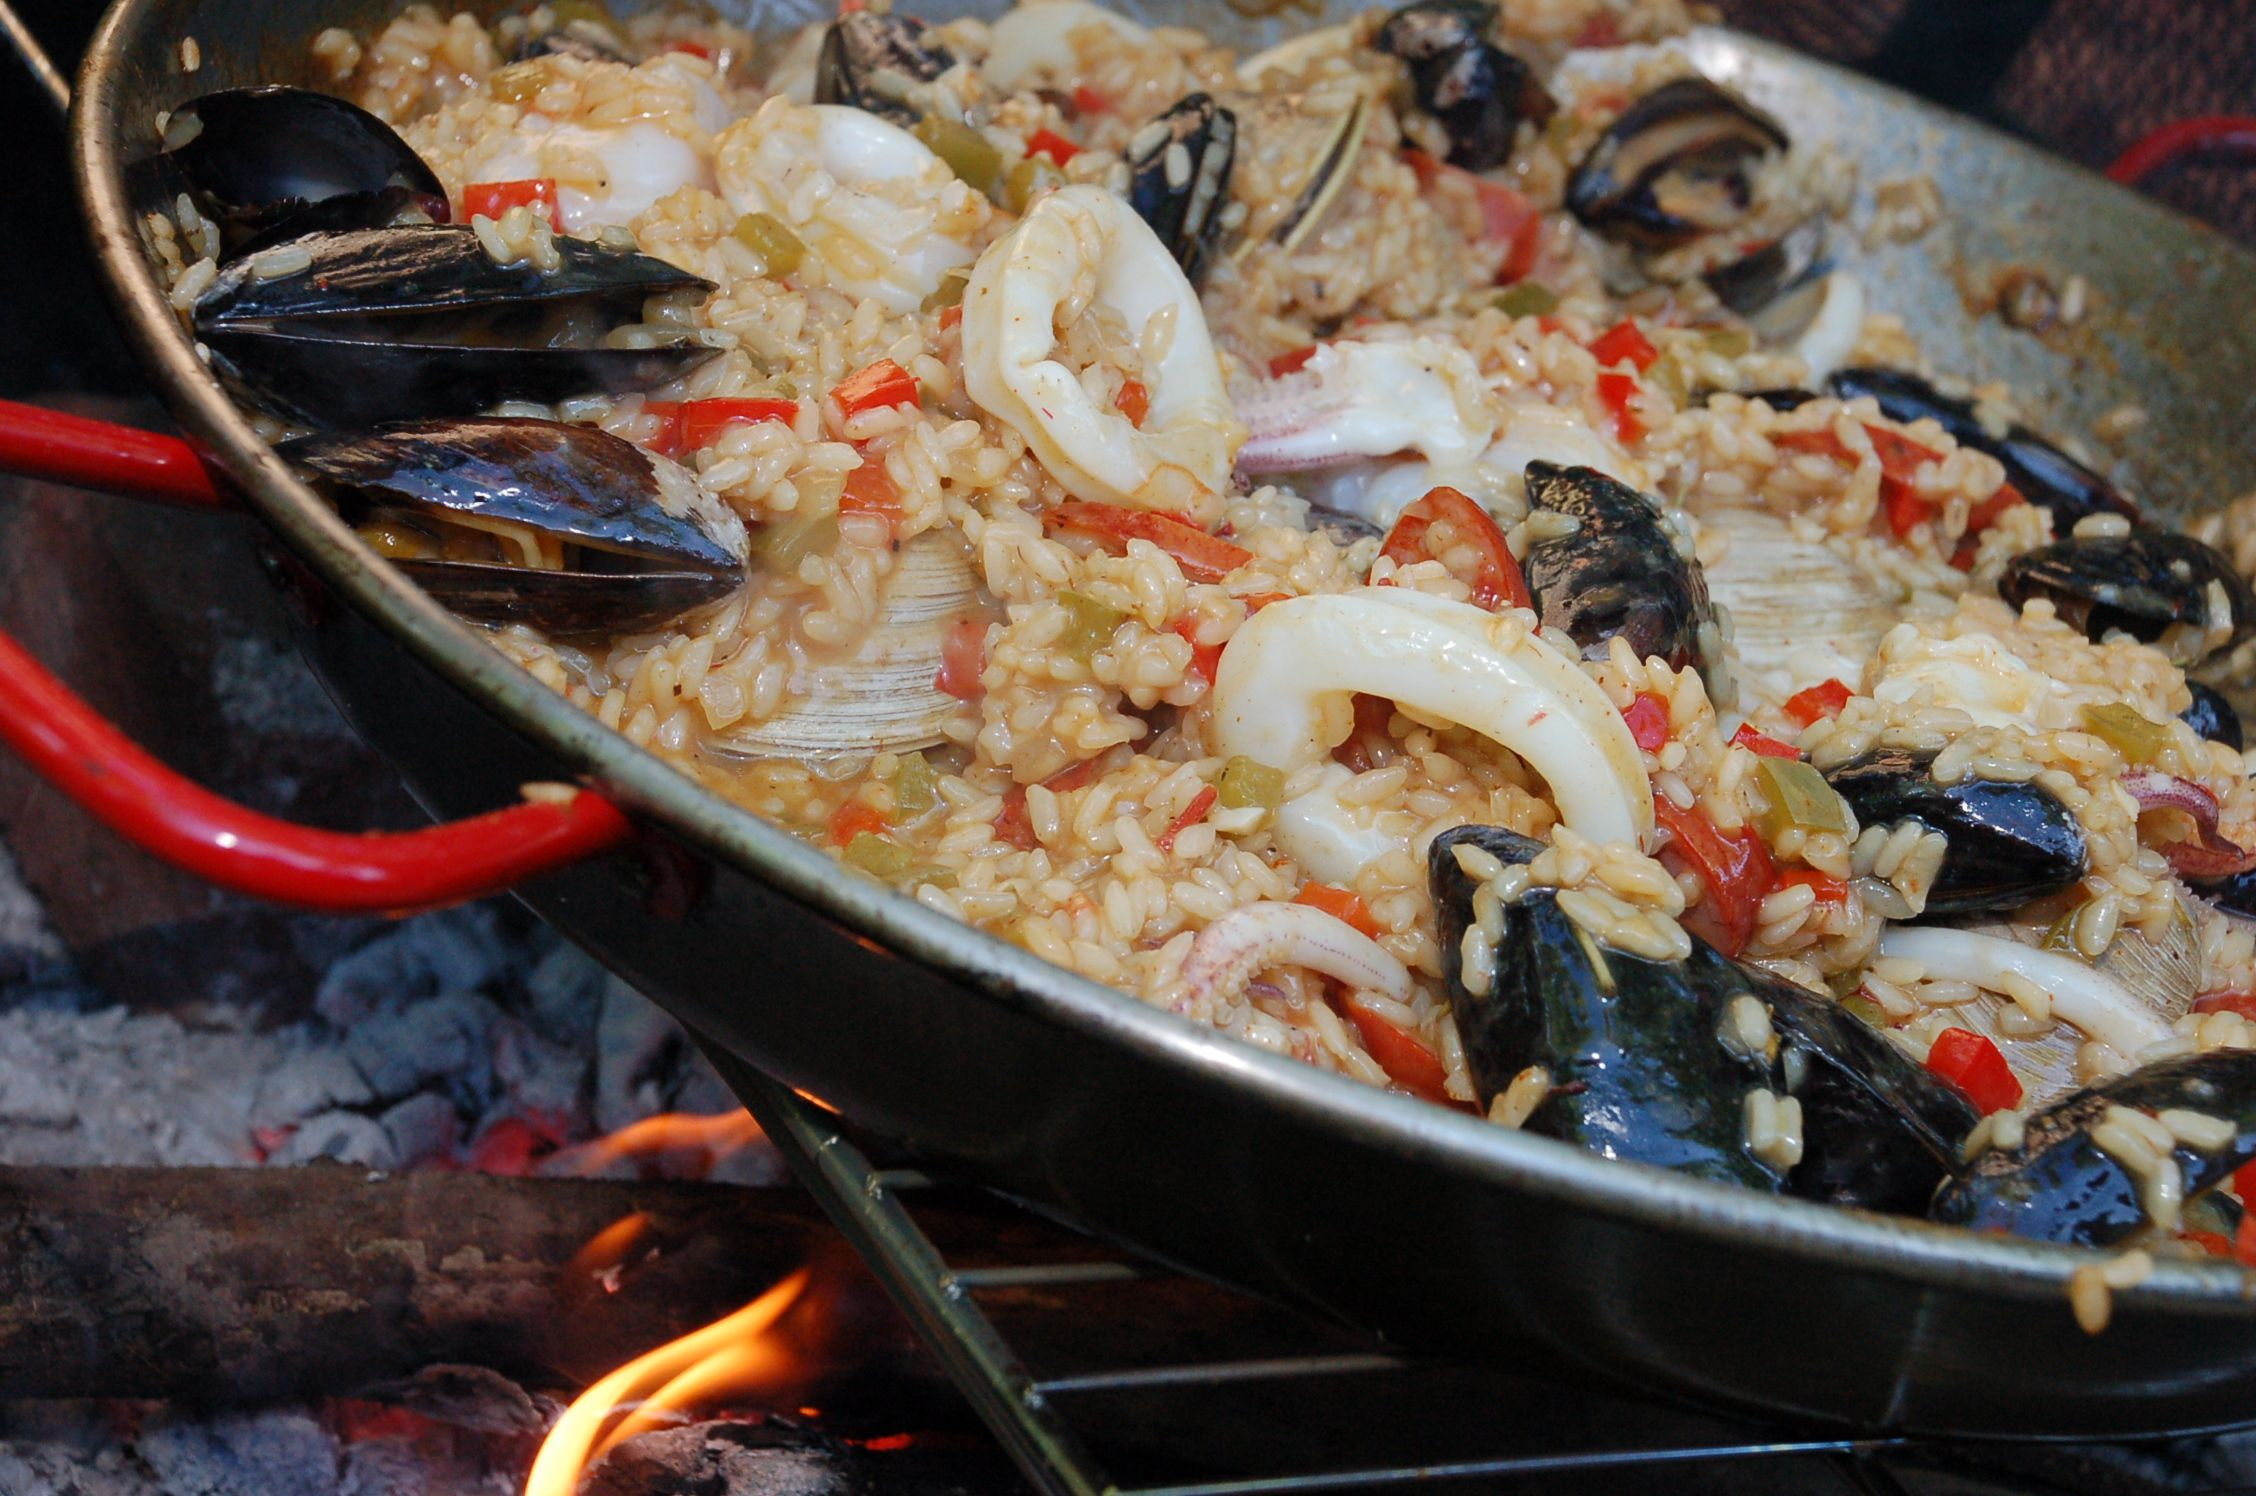 Paella on an open fire. Real food. Real good (poor grammar). Story soon at www.rarerepublic.com.